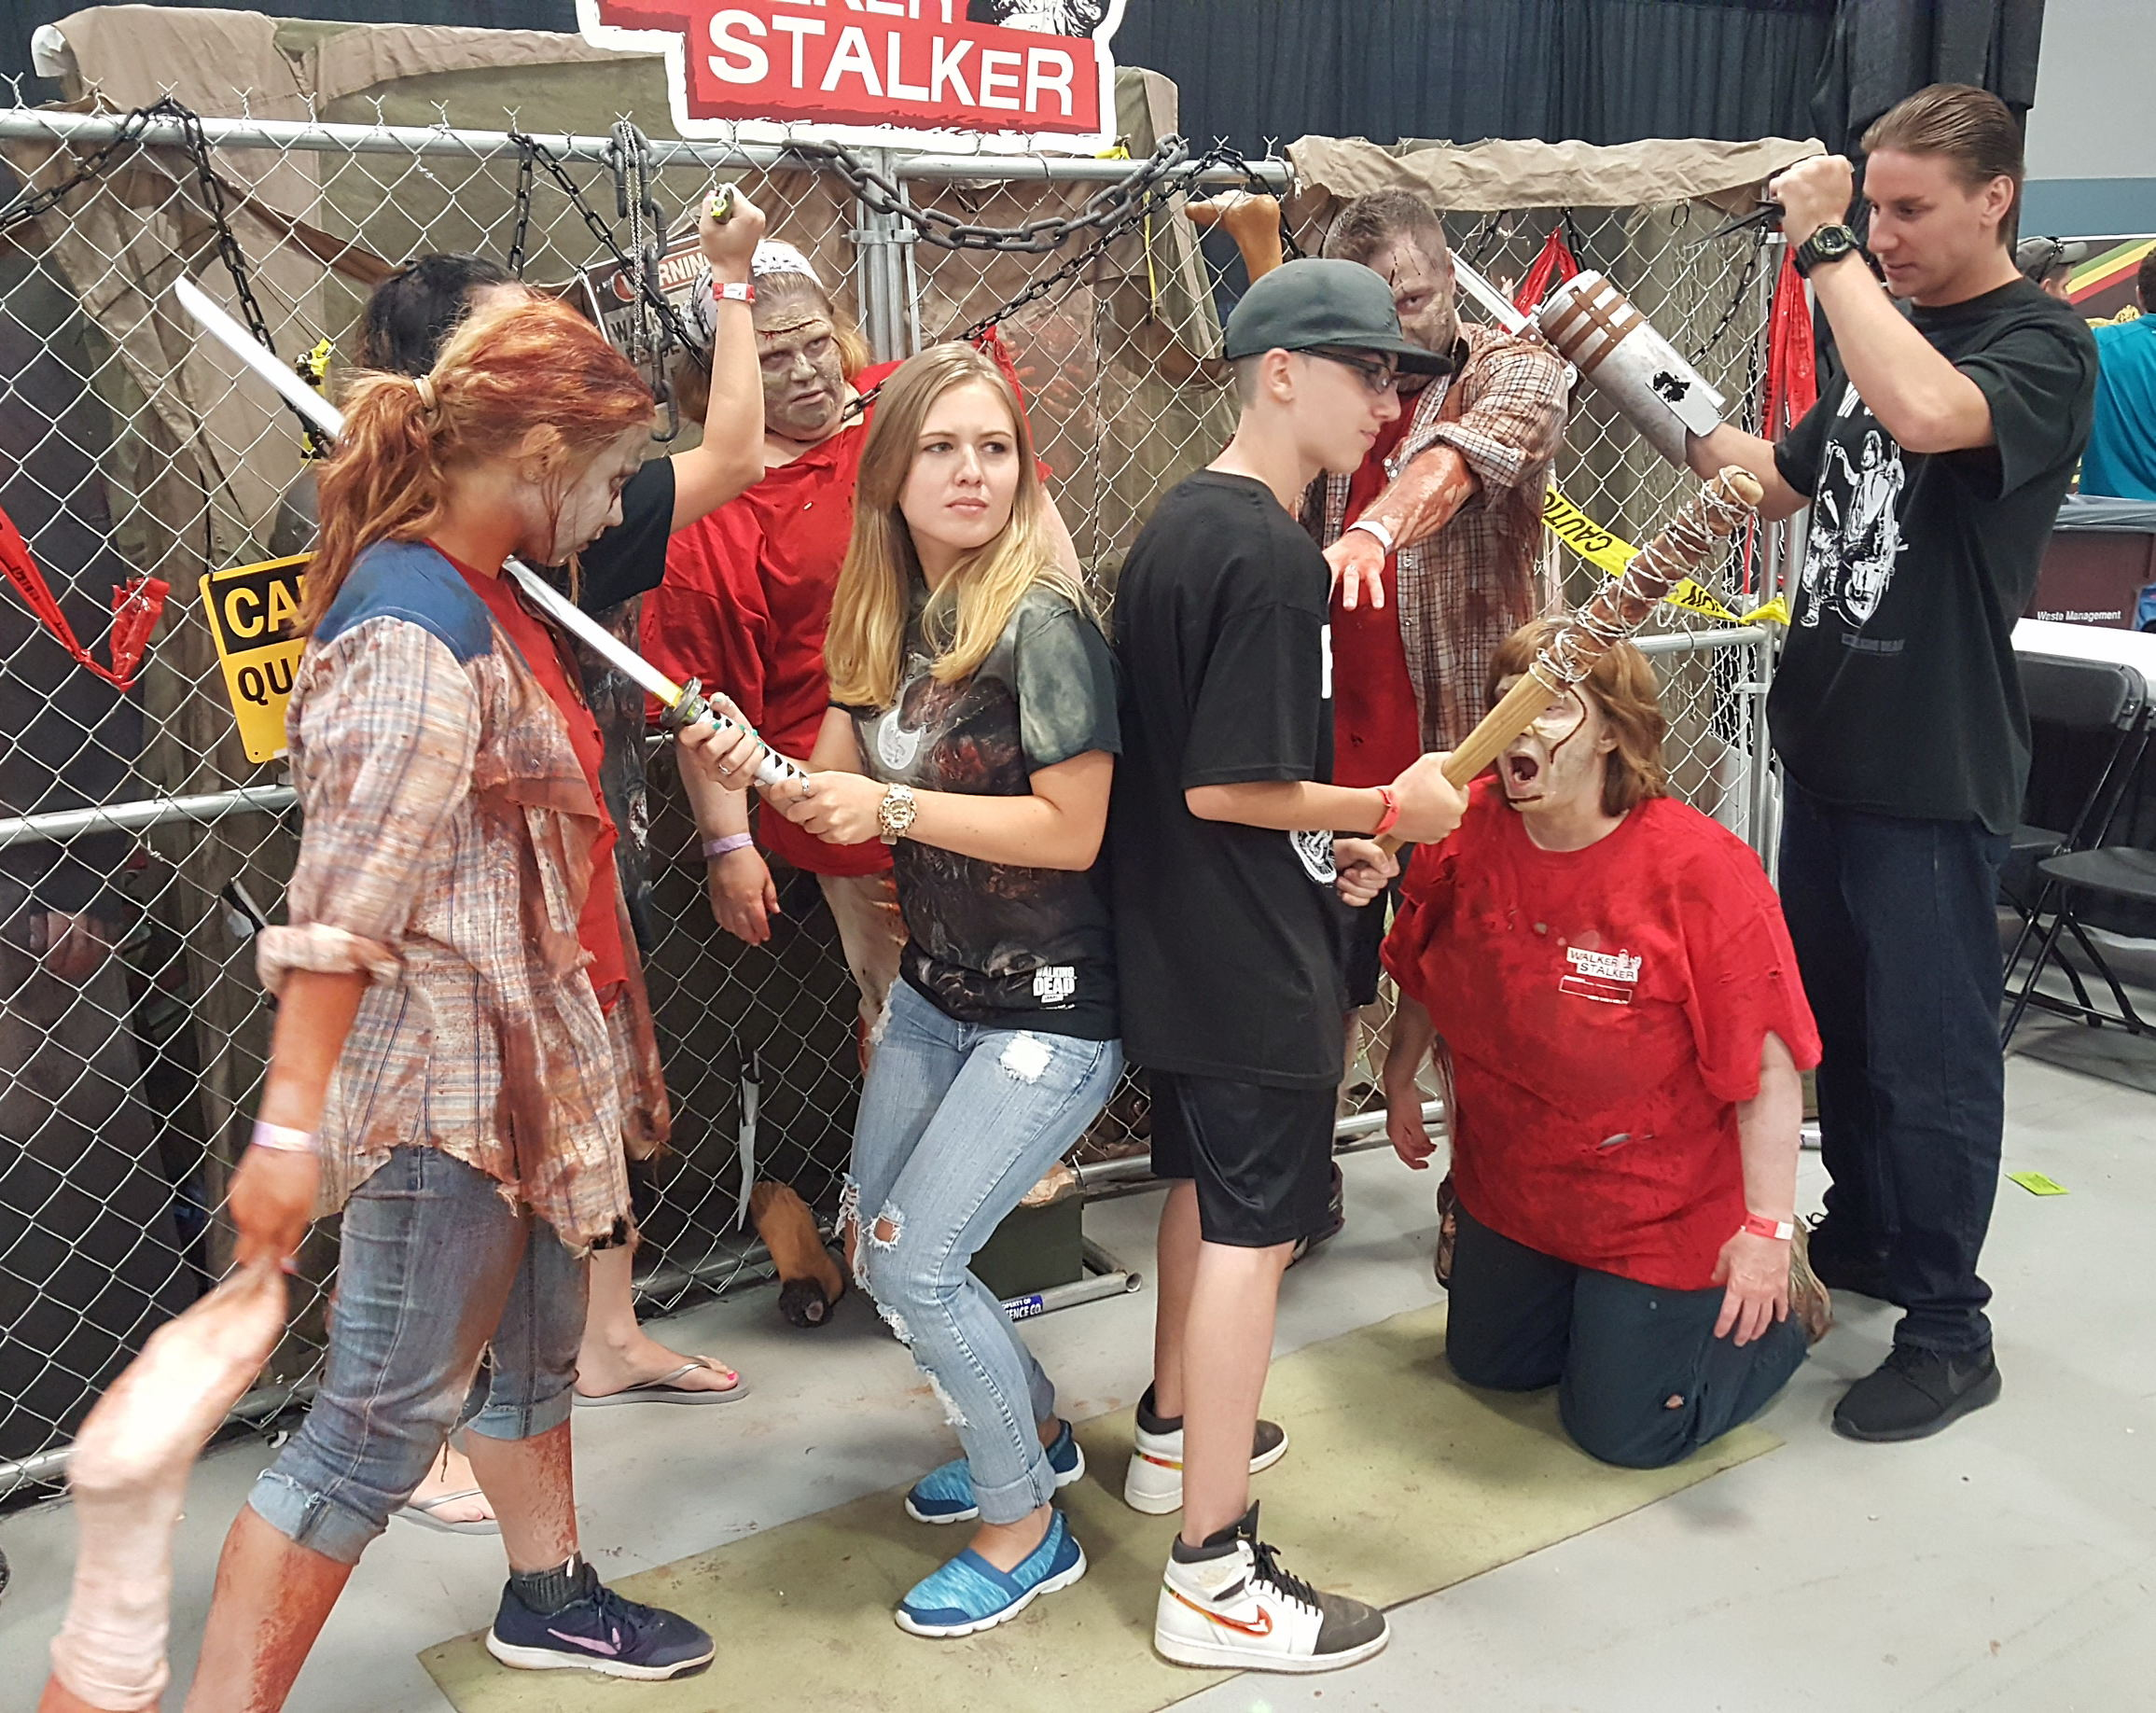 Walker Stalker Con WSC The Walking Dead Zombies